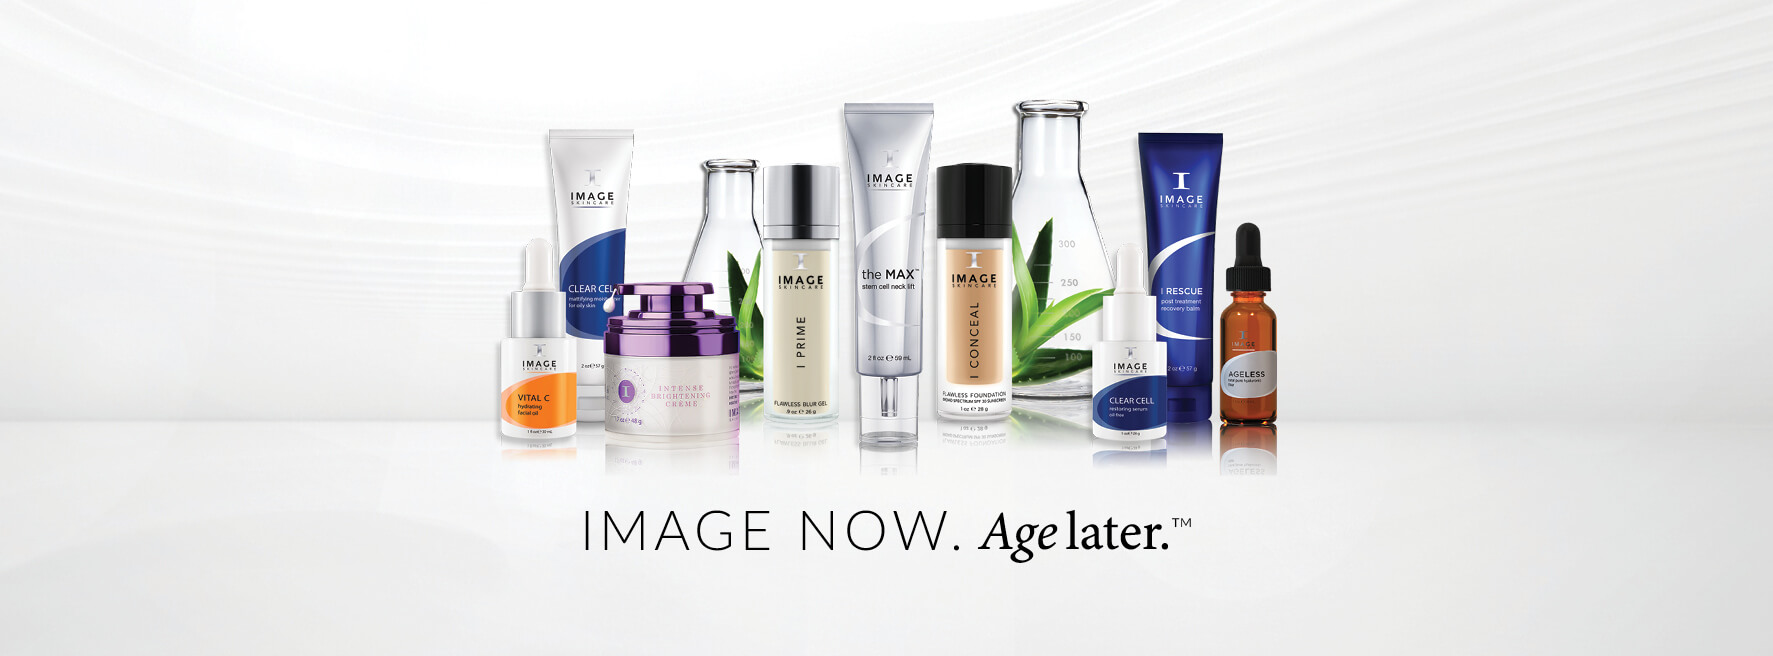 Image now age later products banner